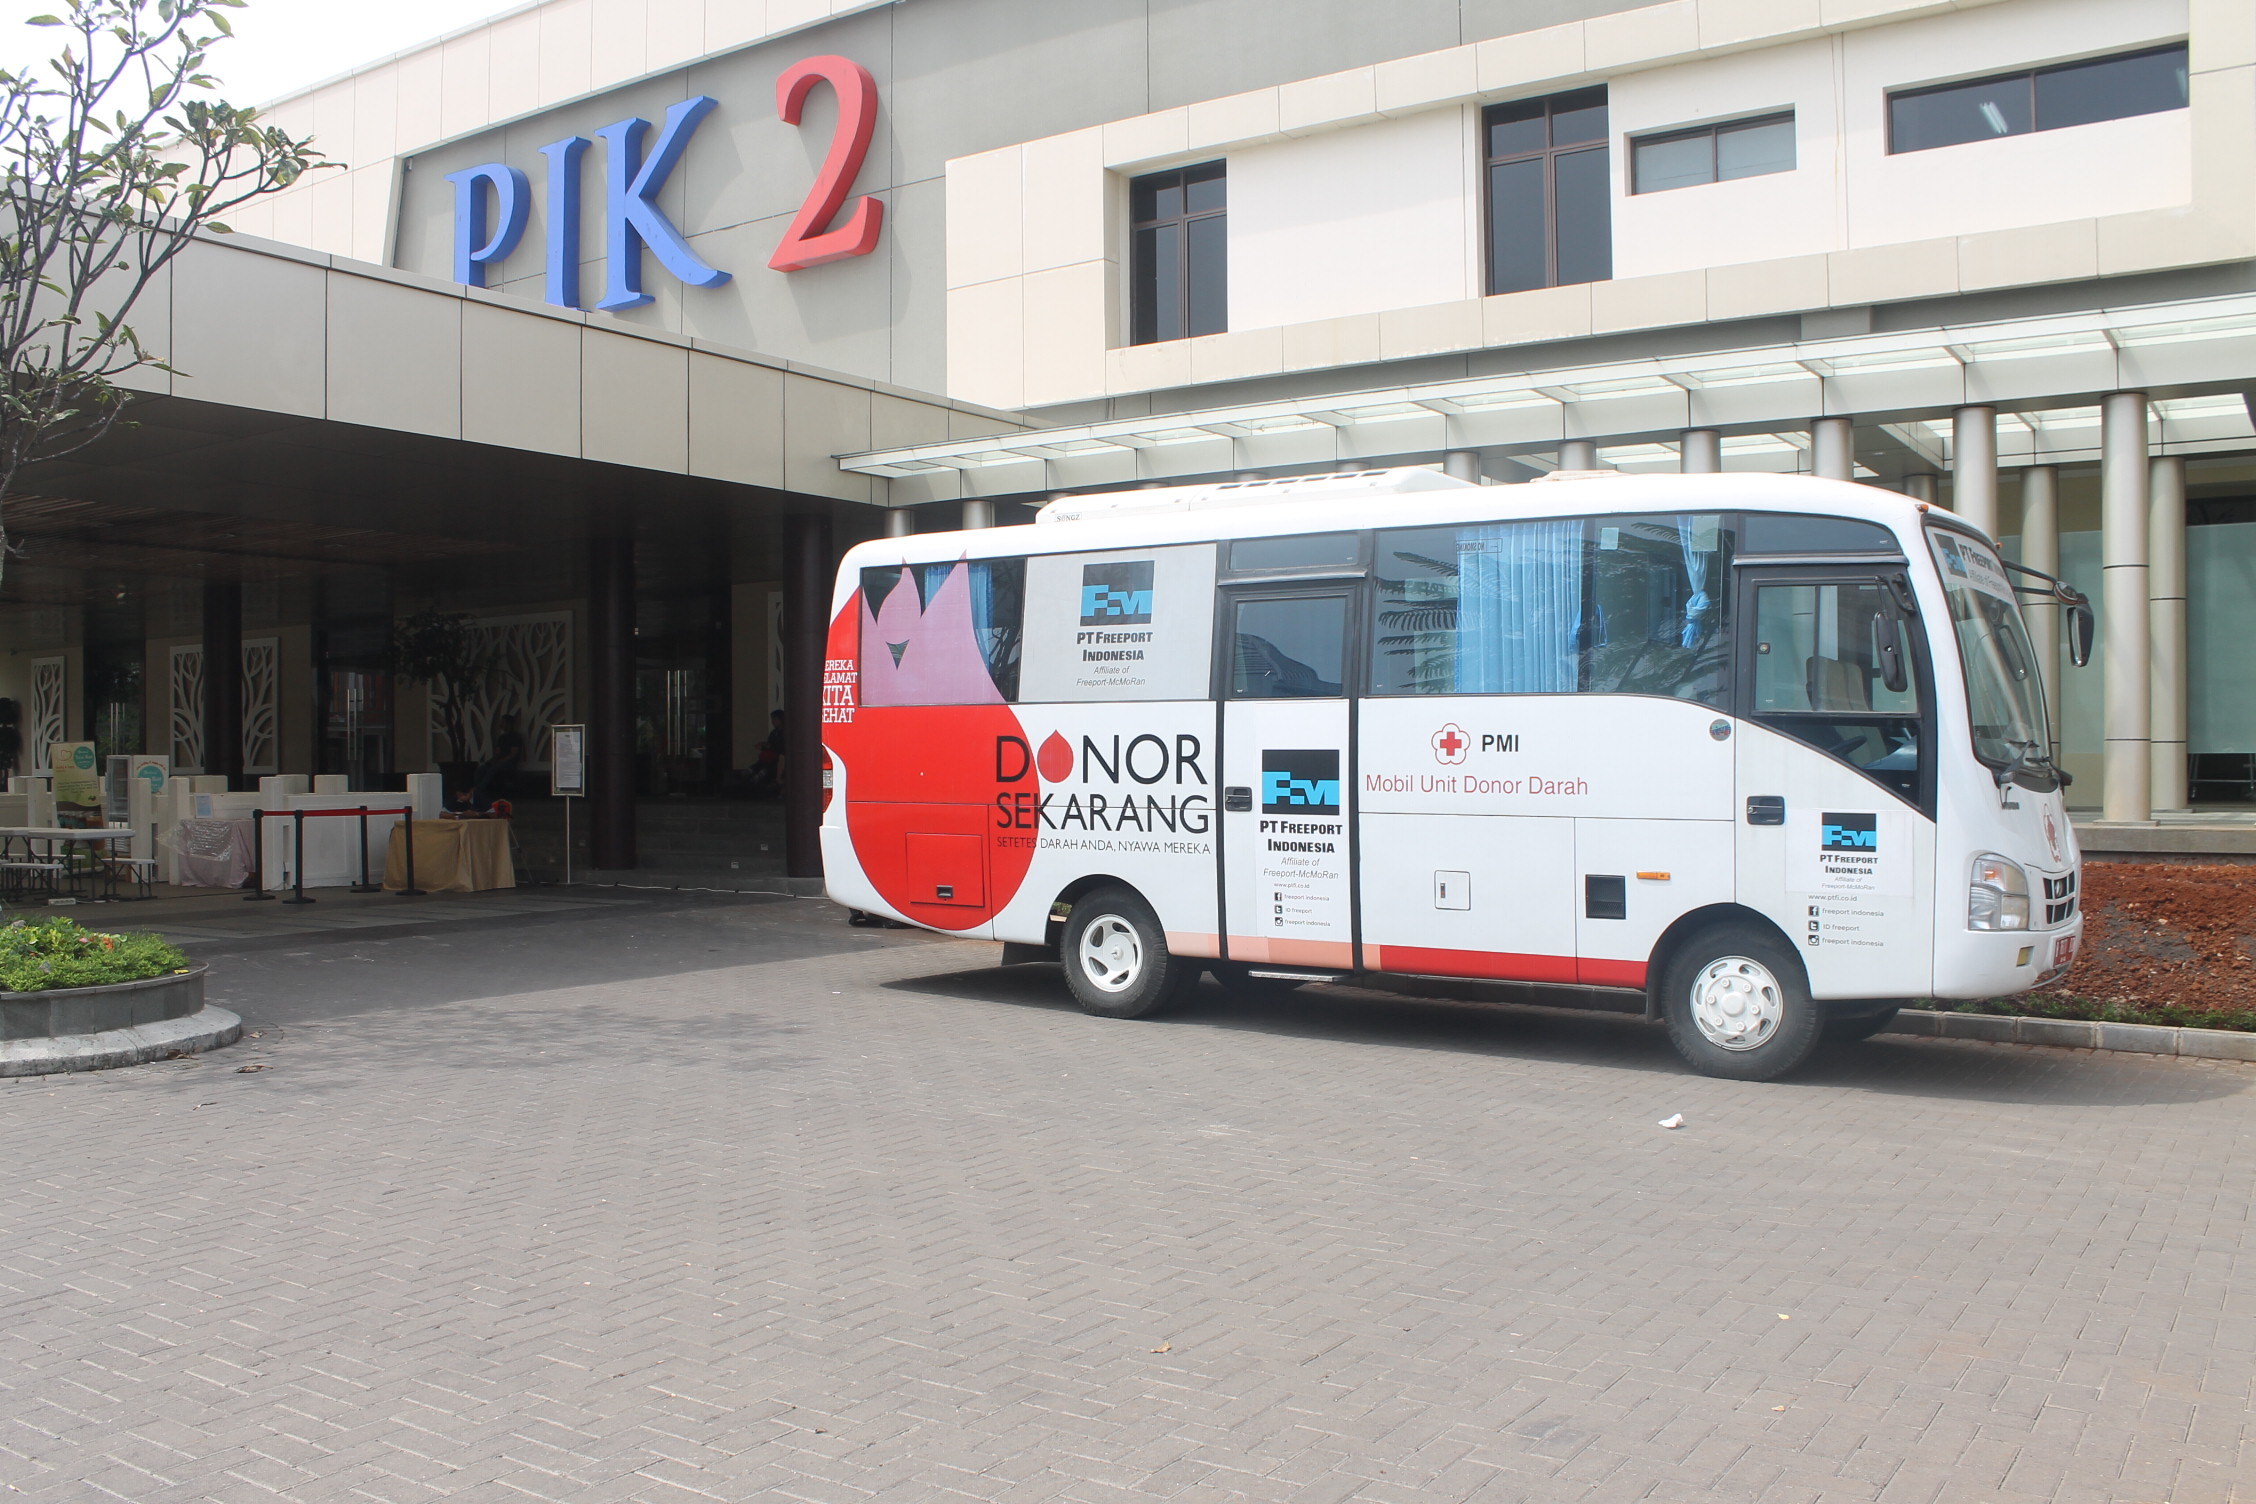 Pik2 Events - PIK 2 Held a Blood Donation Event